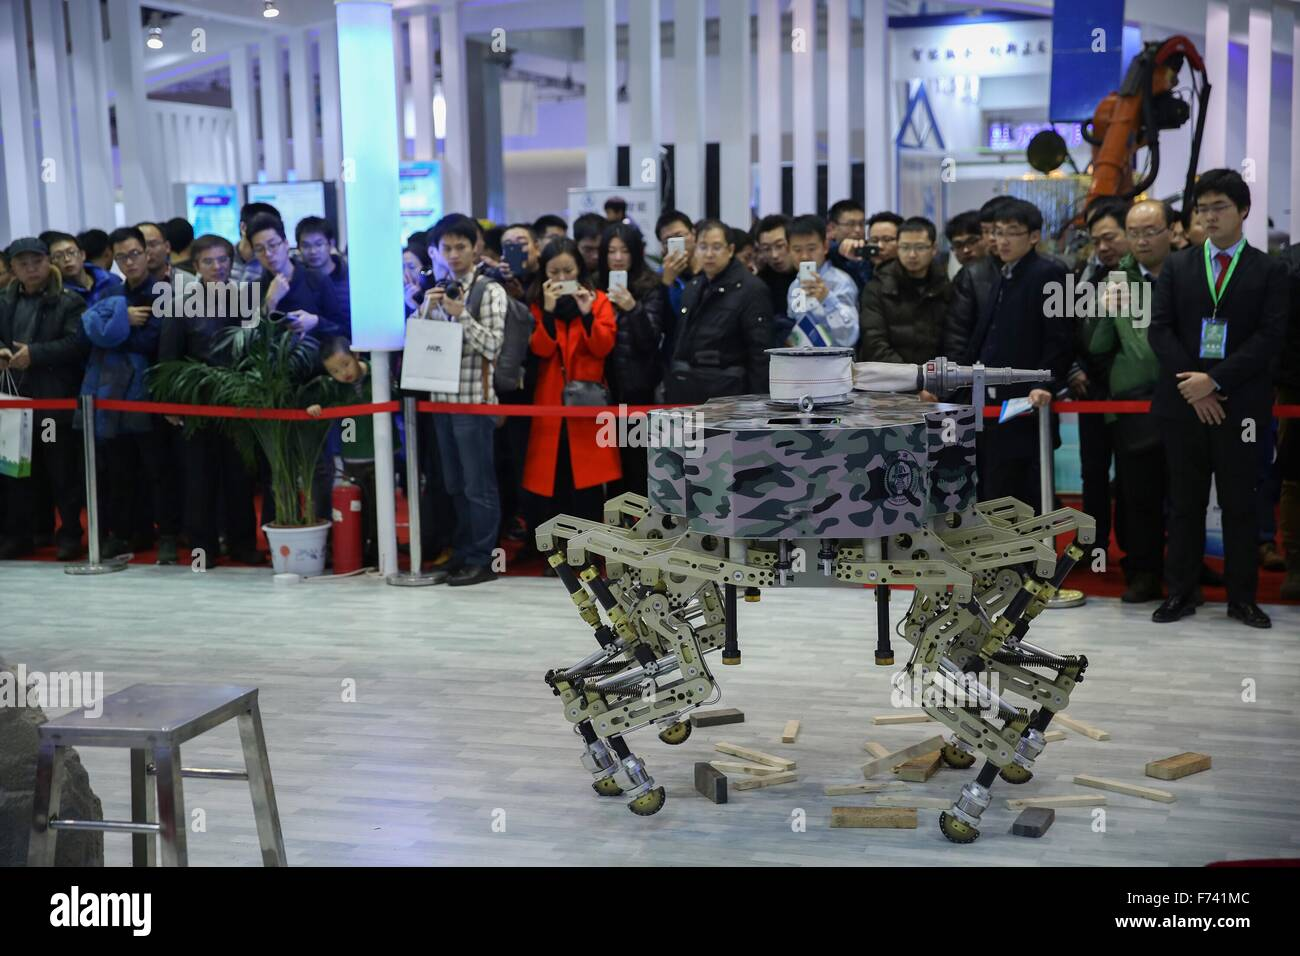 Beijing, China  25th Nov, 2015  Visitors are attracted by a